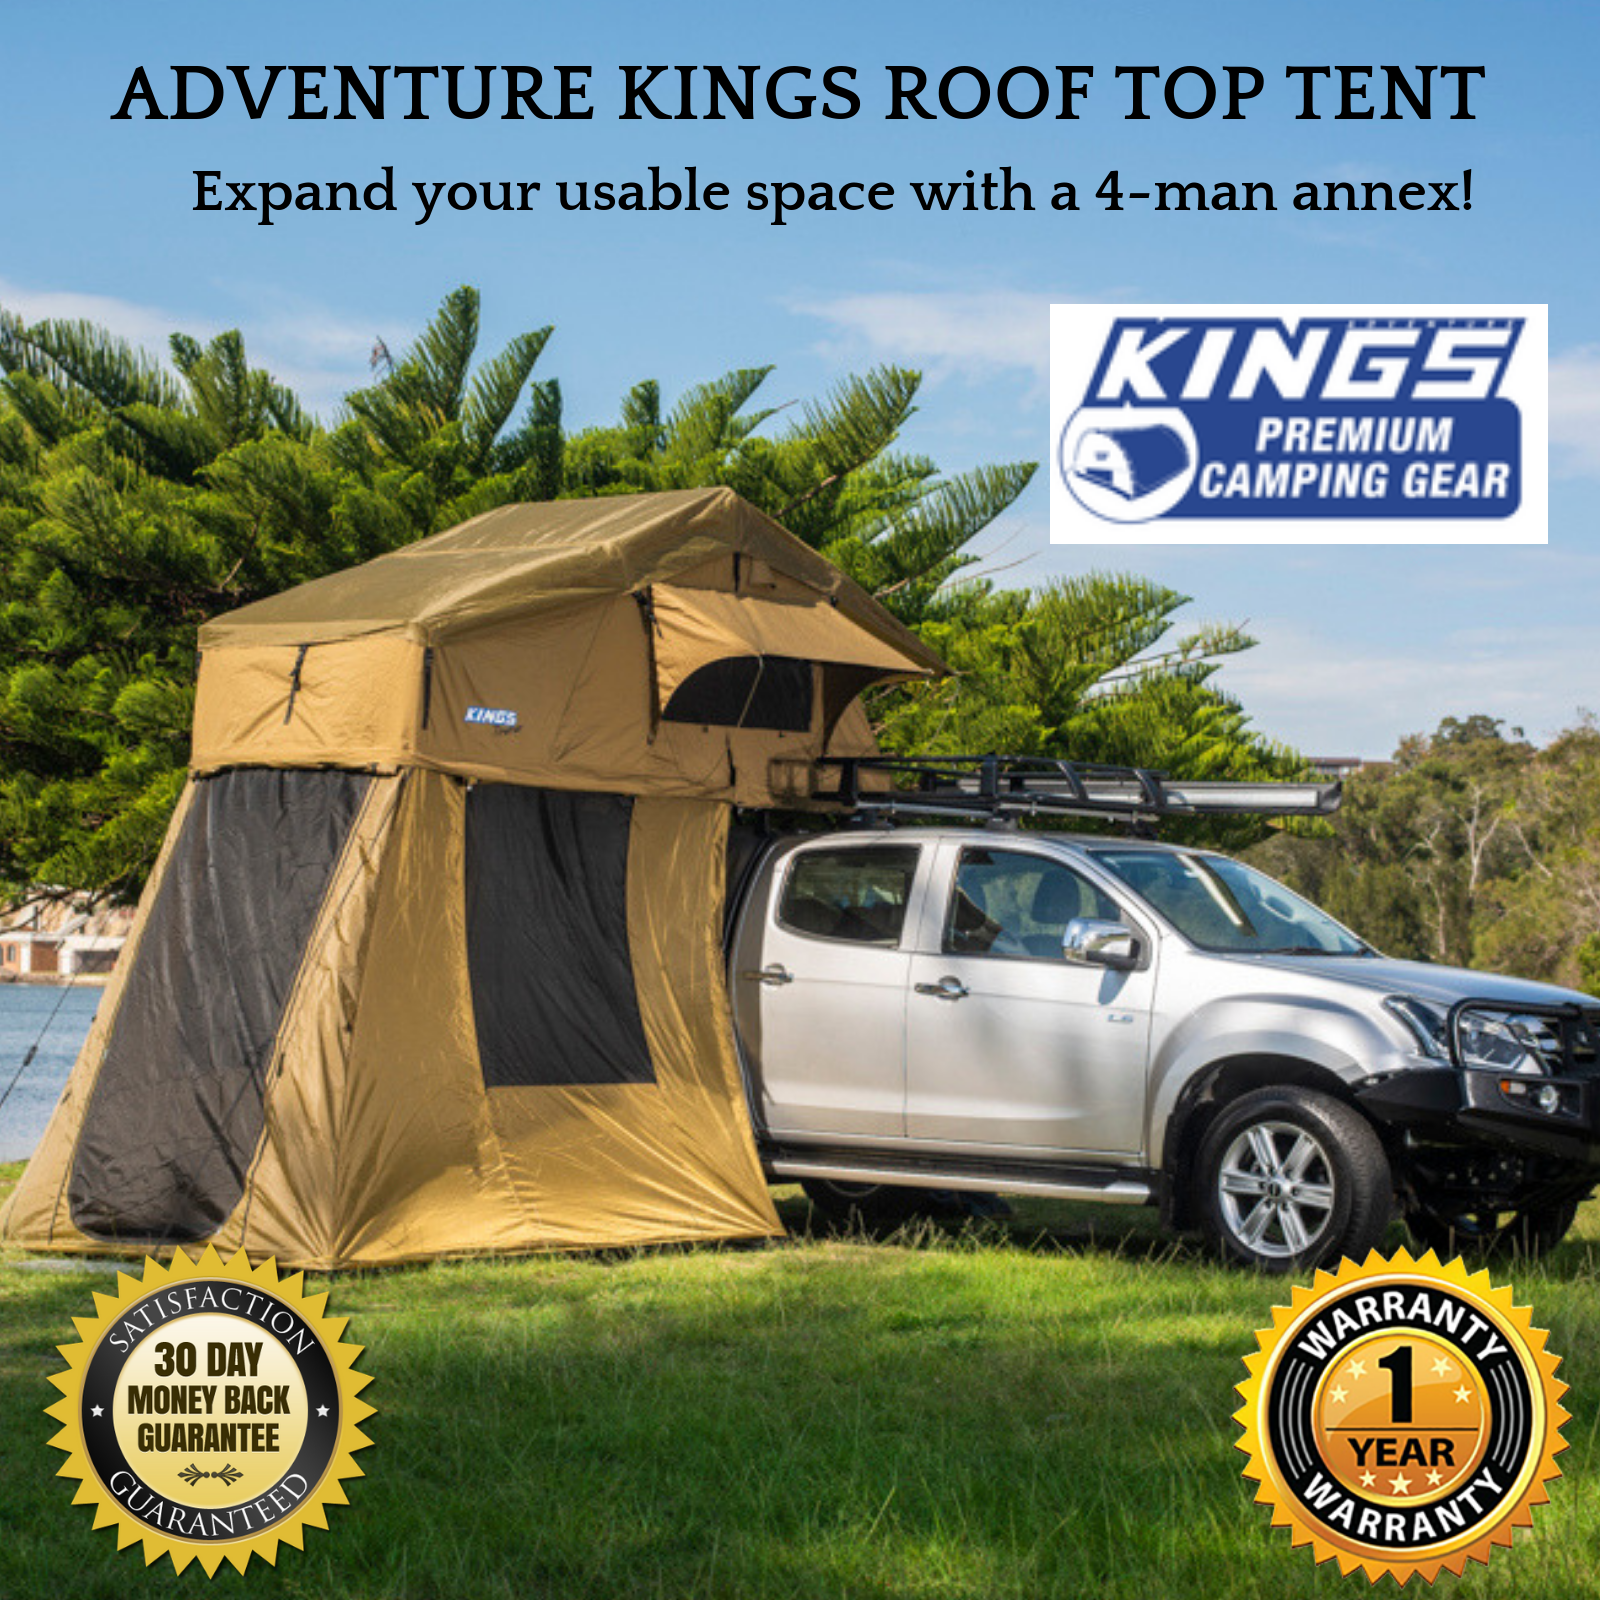 Adventure Kings Roof Top Tent details about best 4 person adventure kings brand annex extension for  rooftop camper car tent